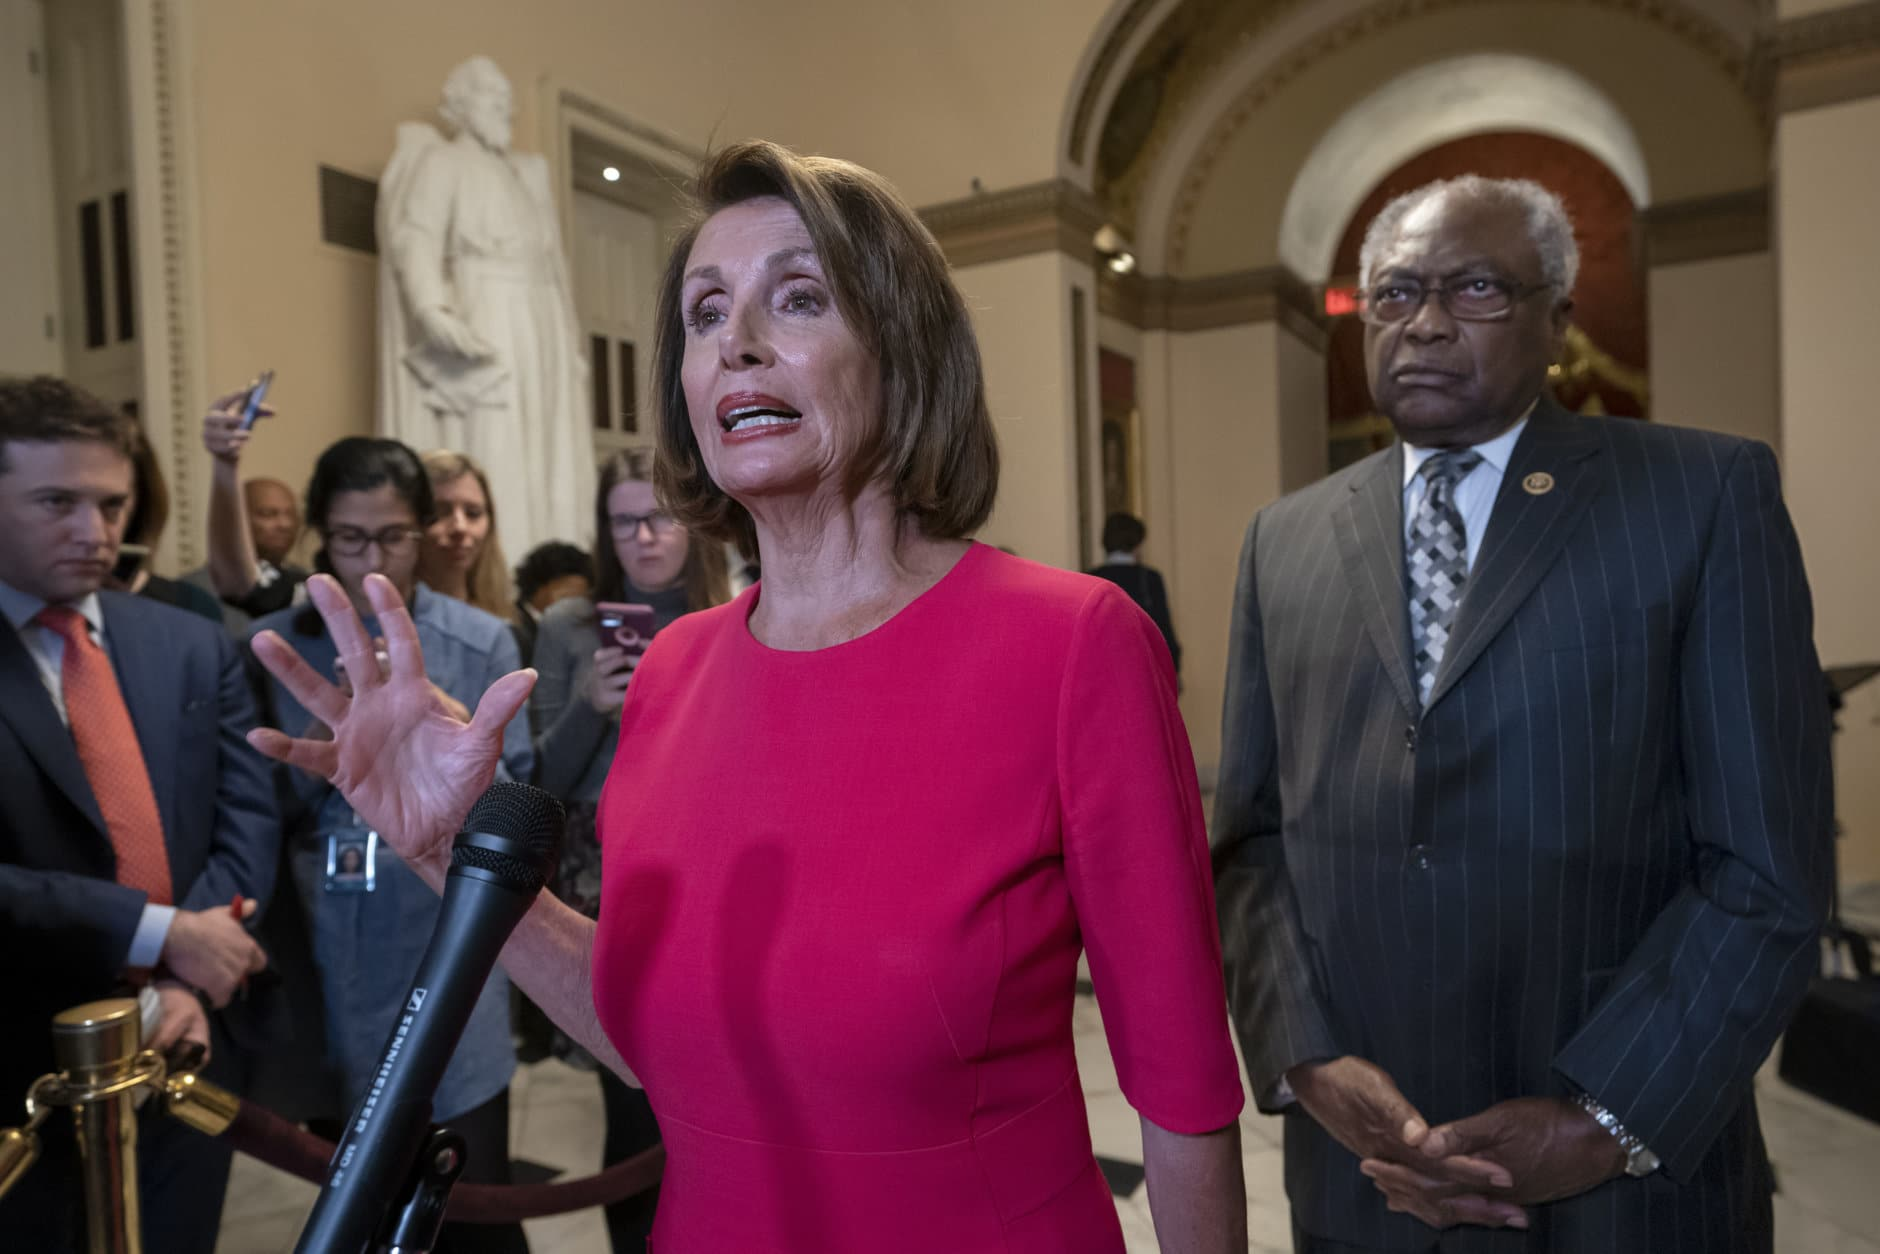 Speaker of the House Nancy Pelosi, D-Calif., center, joined at right by Majority Whip James Clyburn, D-S.C., pushes back on President Donald Trump's demand to fund a wall on the US-Mexico border with the partial government shutdown in its second week, at the Capitol in Washington, Thursday, Jan. 3, 2019. (AP Photo/J. Scott Applewhite)